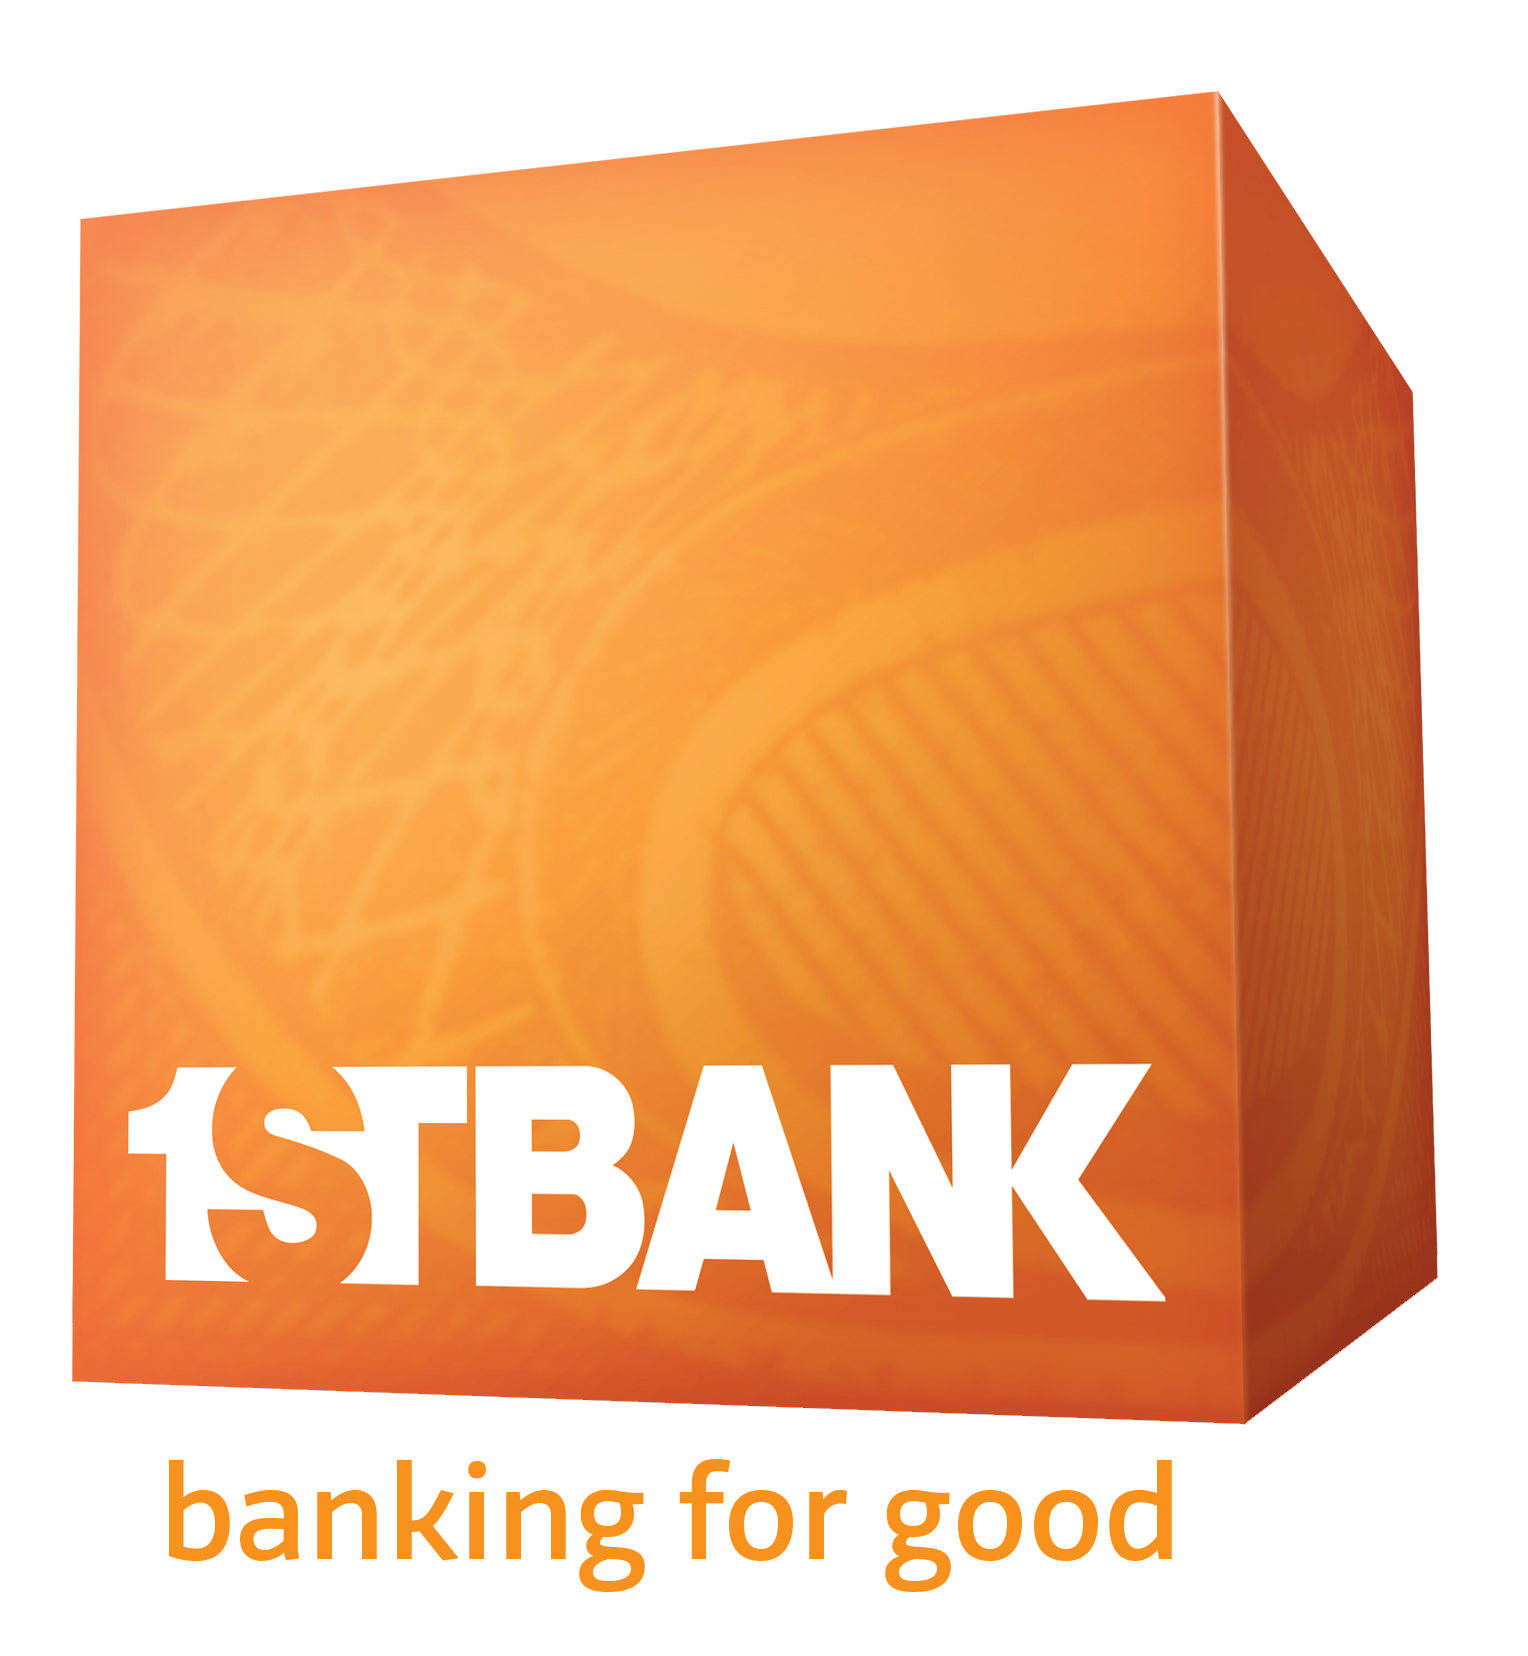 1stBank